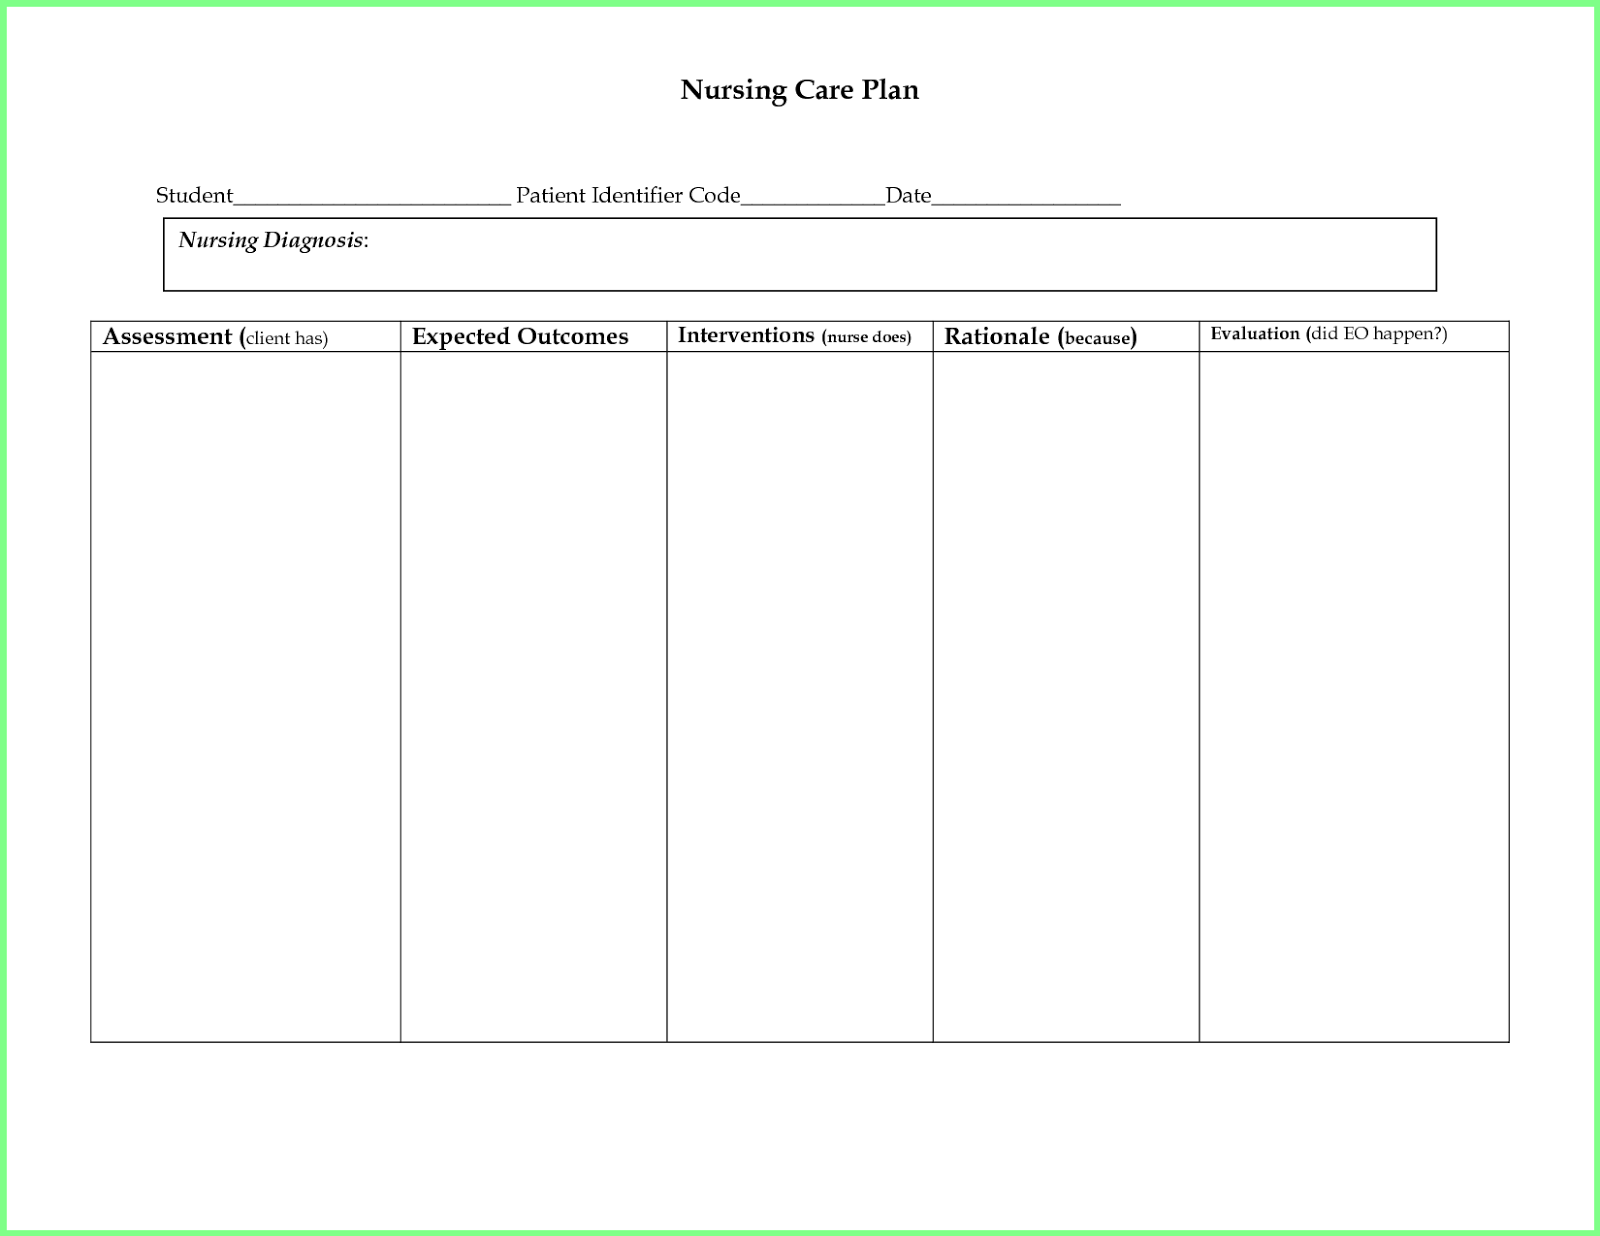 free resume templates nursing nursing resume templates free resume templates for free nursing care plan templates